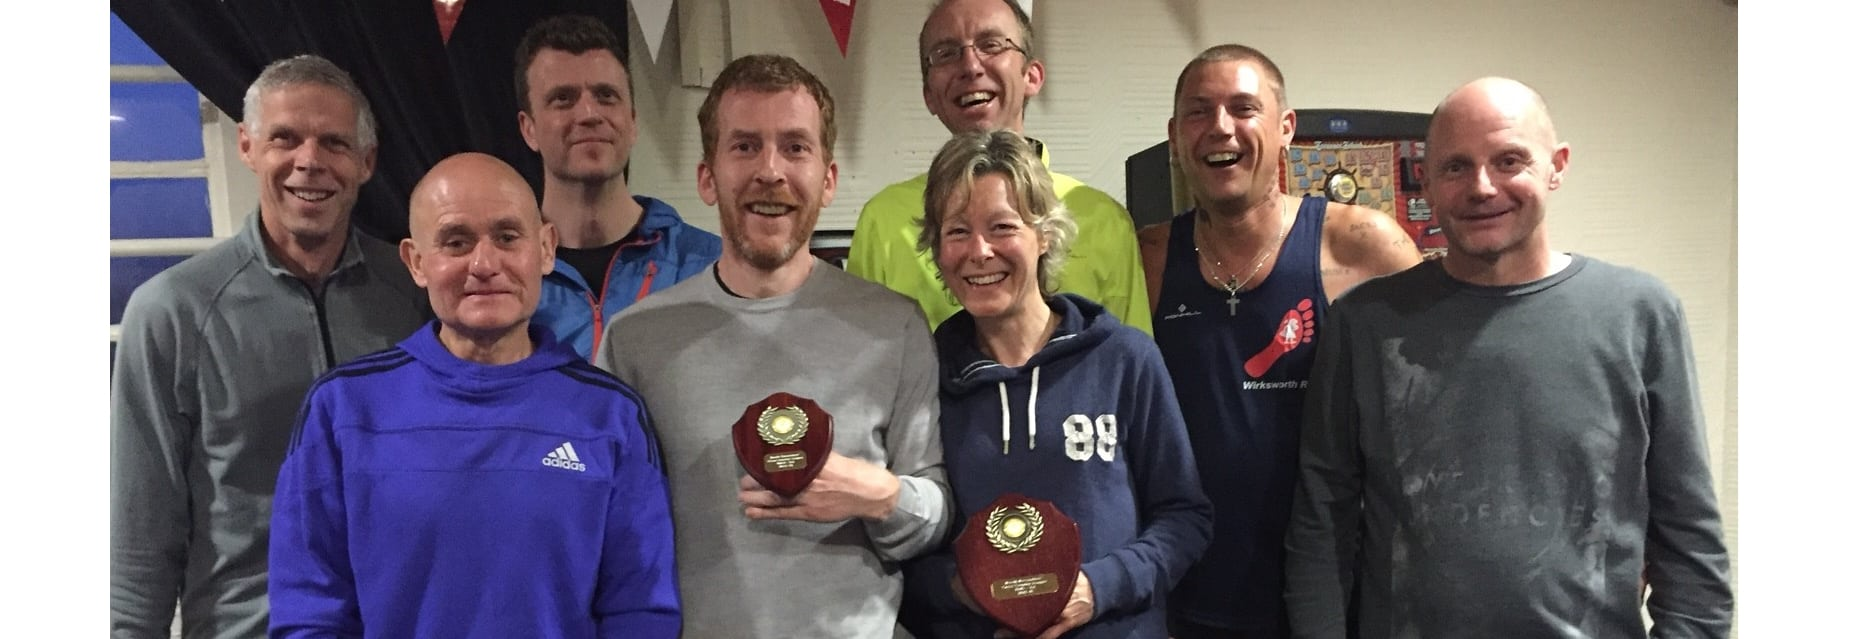 BDL XC awards winter 2015-16